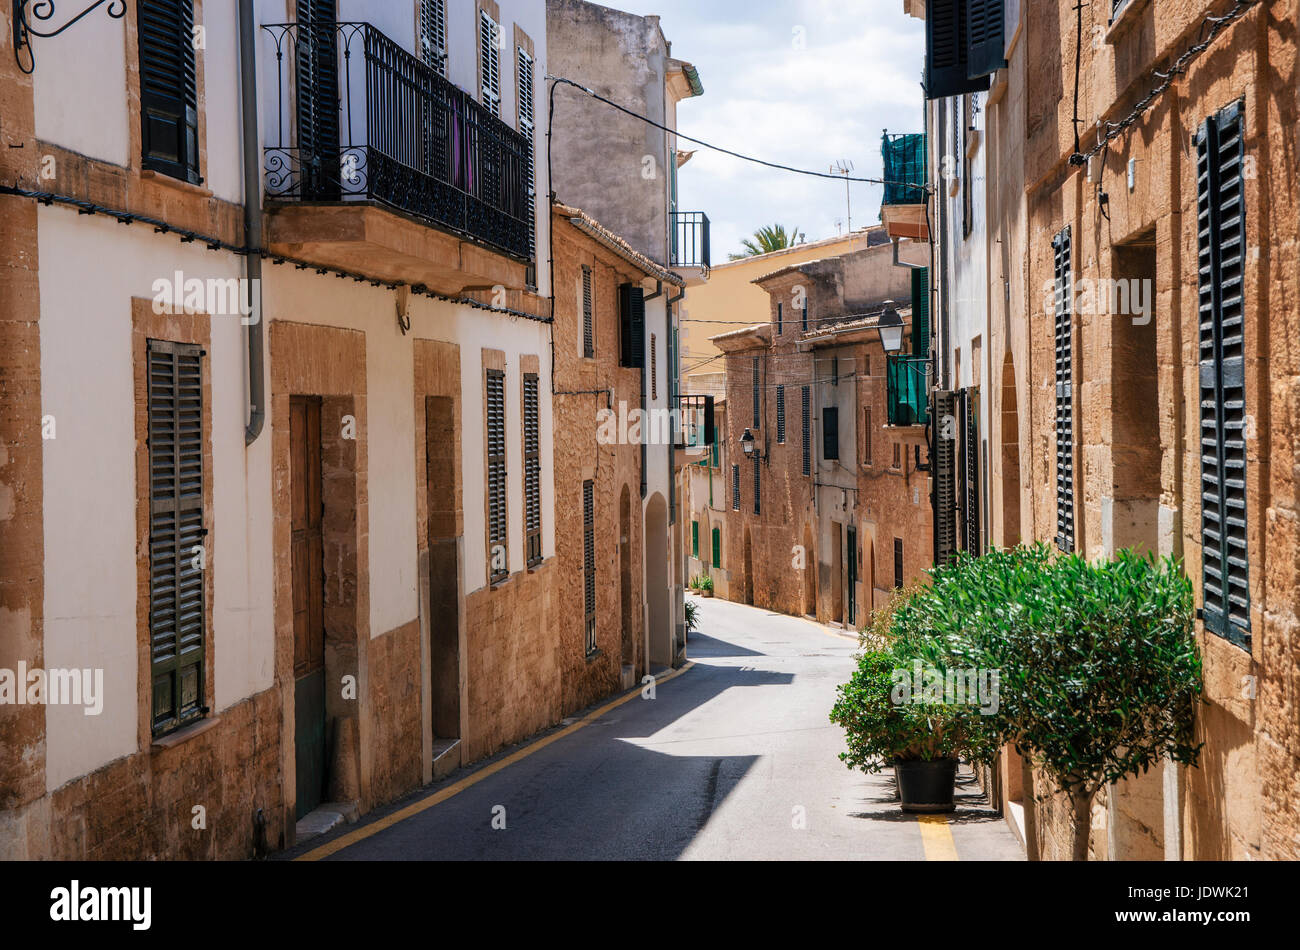 Alcudia, Mallorca, Spain - May 23, 2015: Narrow street of historical town part of Alcudia with its traditional house - Stock Image